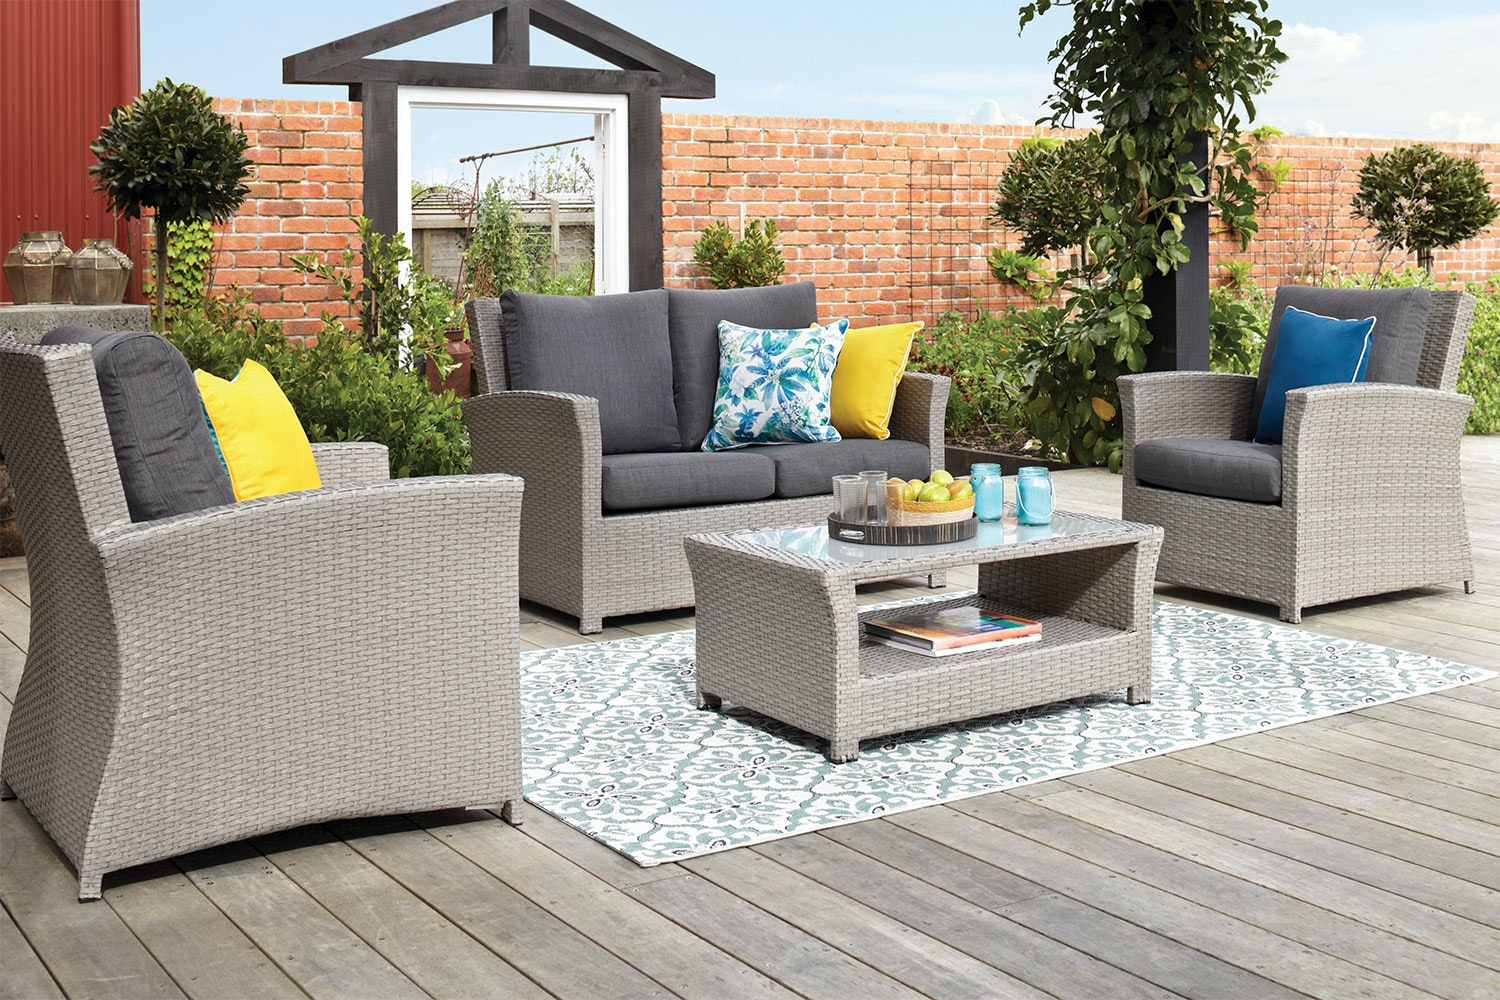 Mojito 4 Piece Outdoor Lounge Setting